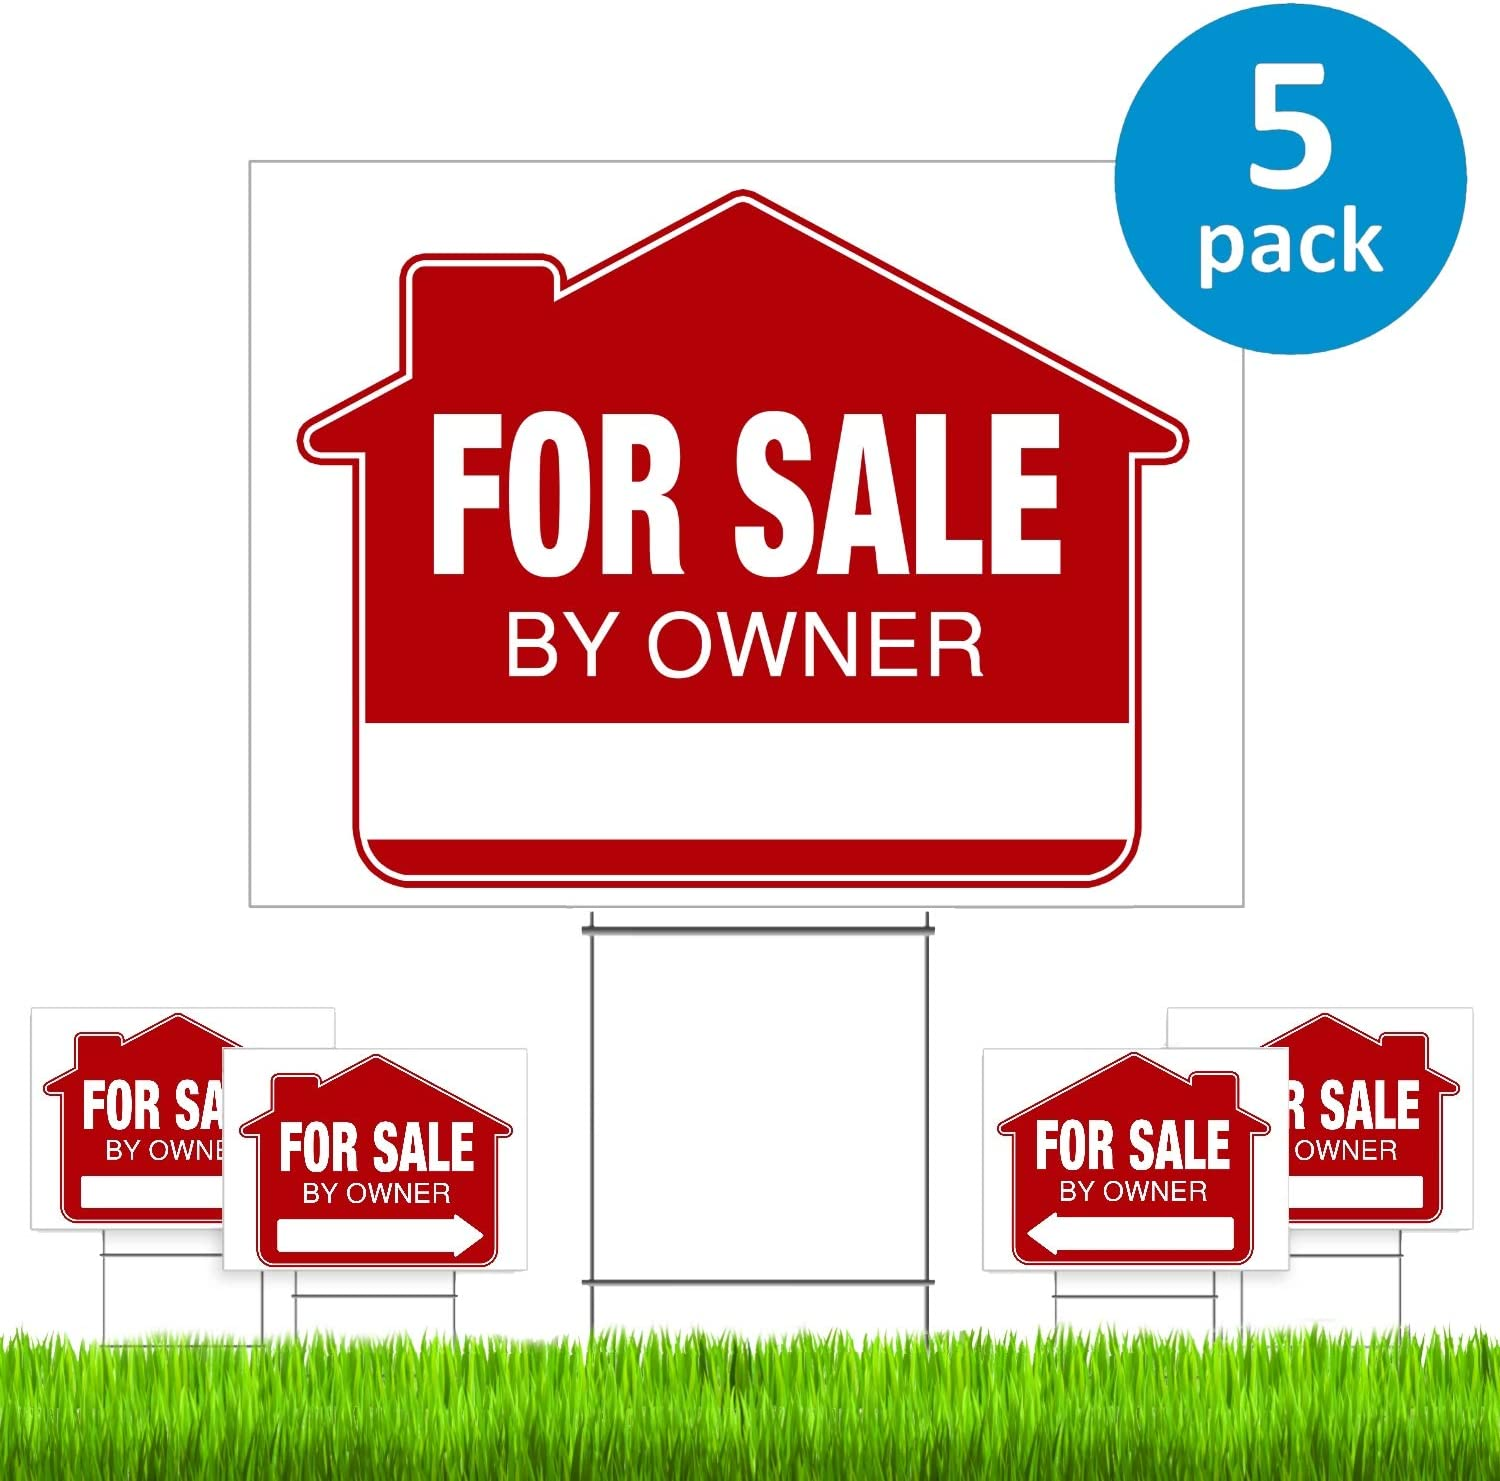 "For Sale By Owner Yard Sign (5 Pack) – PRO Home For Sale Sign Kit With 5 Double-Sided Real Estate Signs & 5 Heavy Duty Yard Stakes (Large 18"" x 24"" Size) – NEW!"